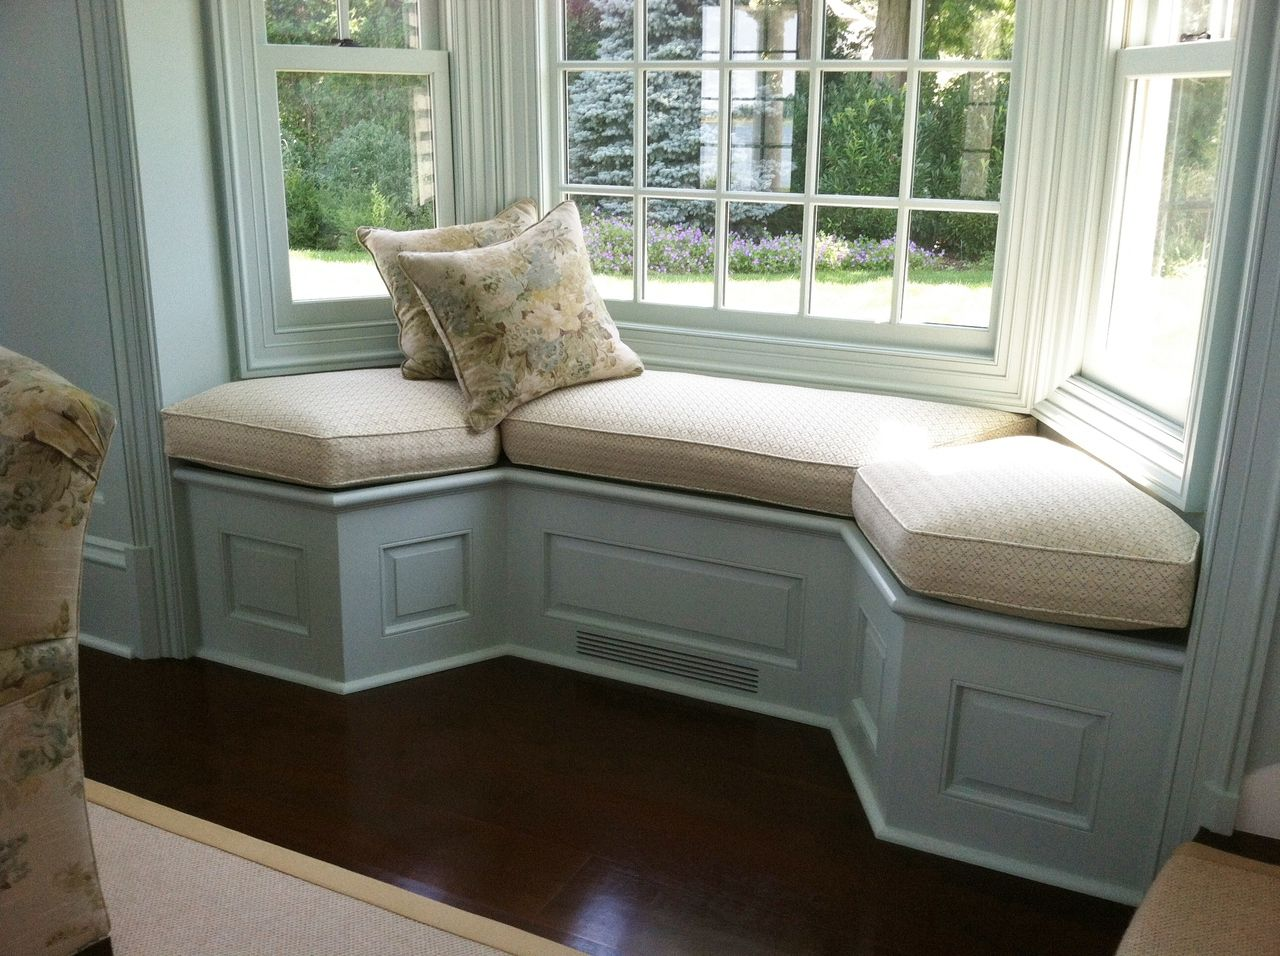 Window Seating country window seat cushion | window seat cushions, seat cushions